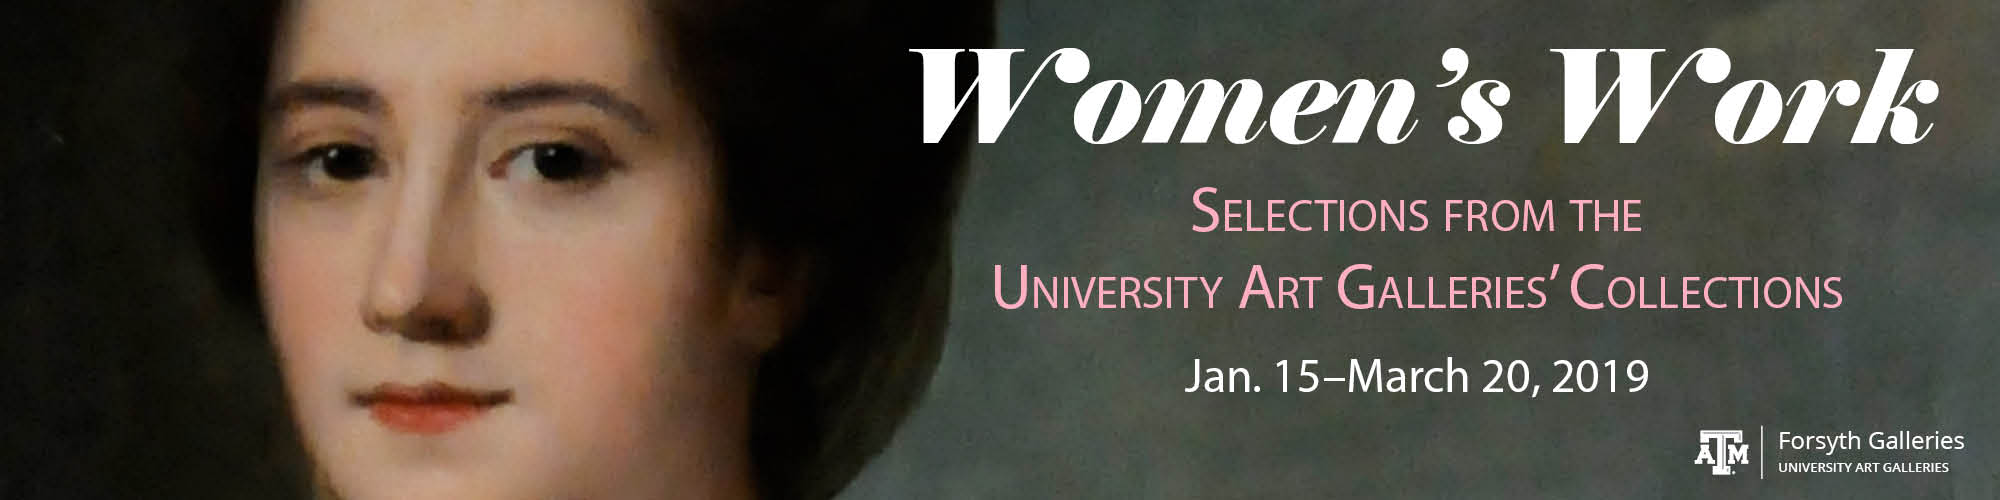 Women's Work: Selections from the University Art Galleries' Collections